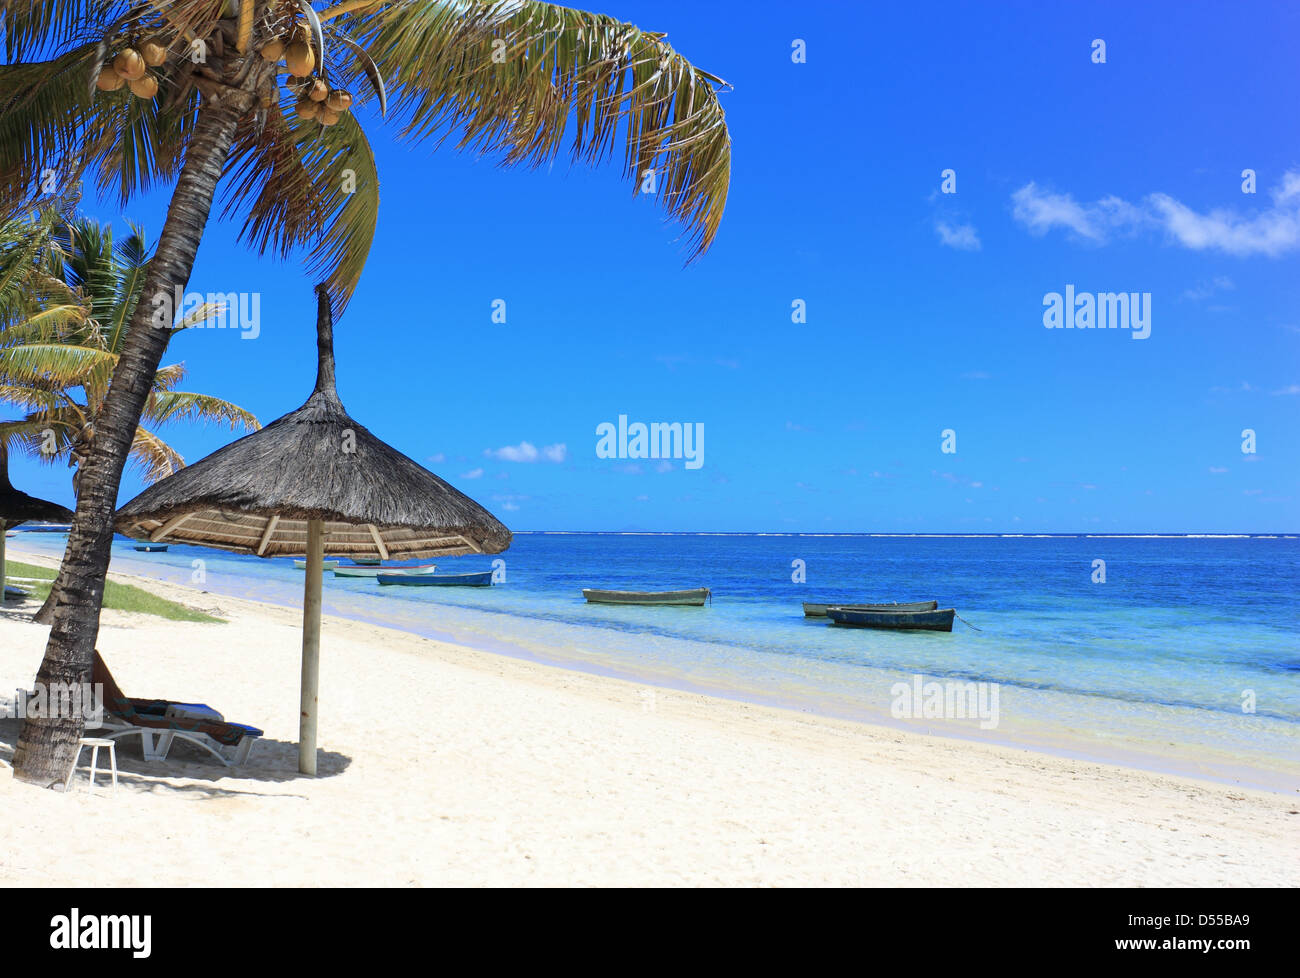 Palm beach with boat on the ocean in Mauritius island - Stock Image